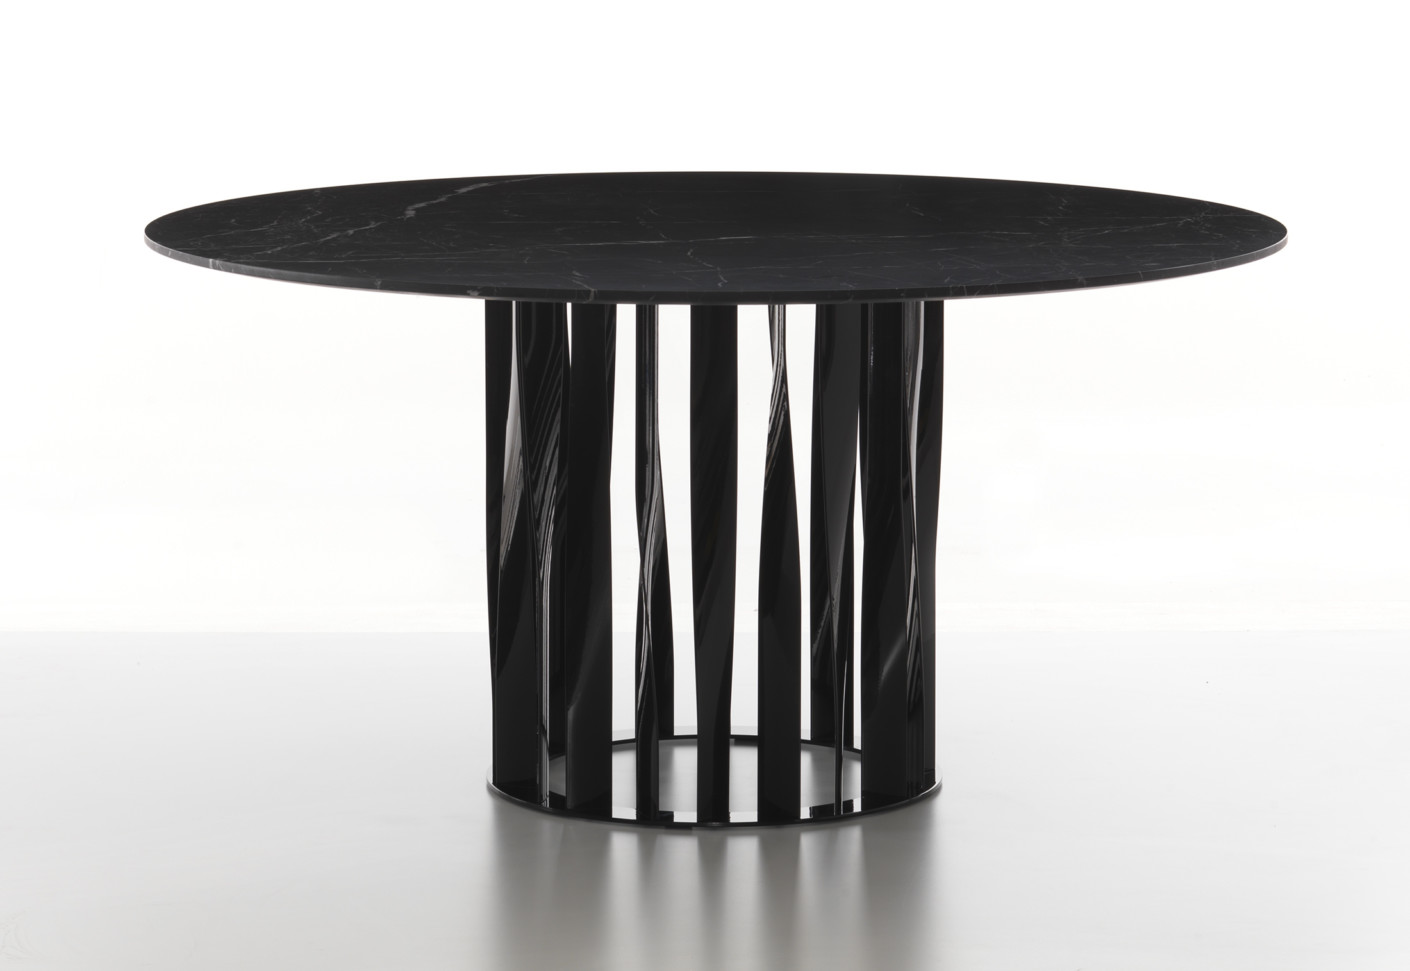 Boboli Table round by Cassina STYLEPARK : boboli table round 1 from www.stylepark.com size 1410 x 971 jpeg 90kB